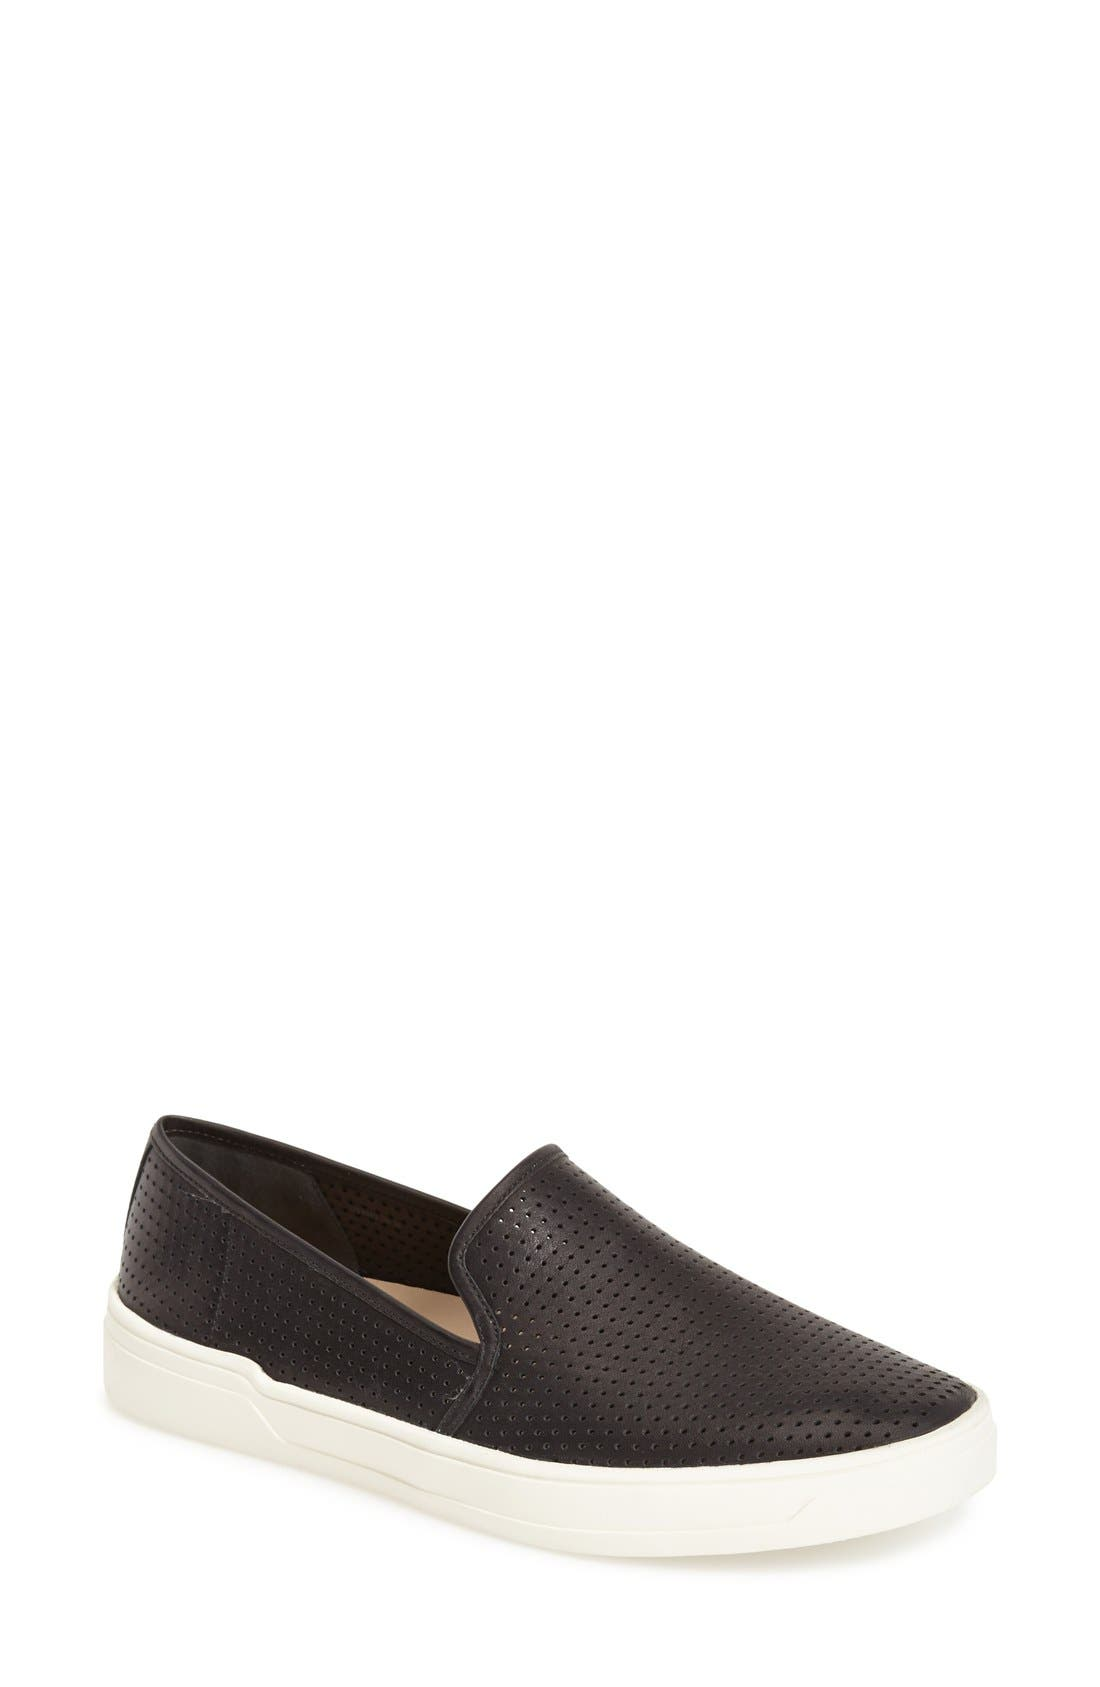 Main Image - Via Spiga 'Galea' Leather Slip-On Sneaker (Women)